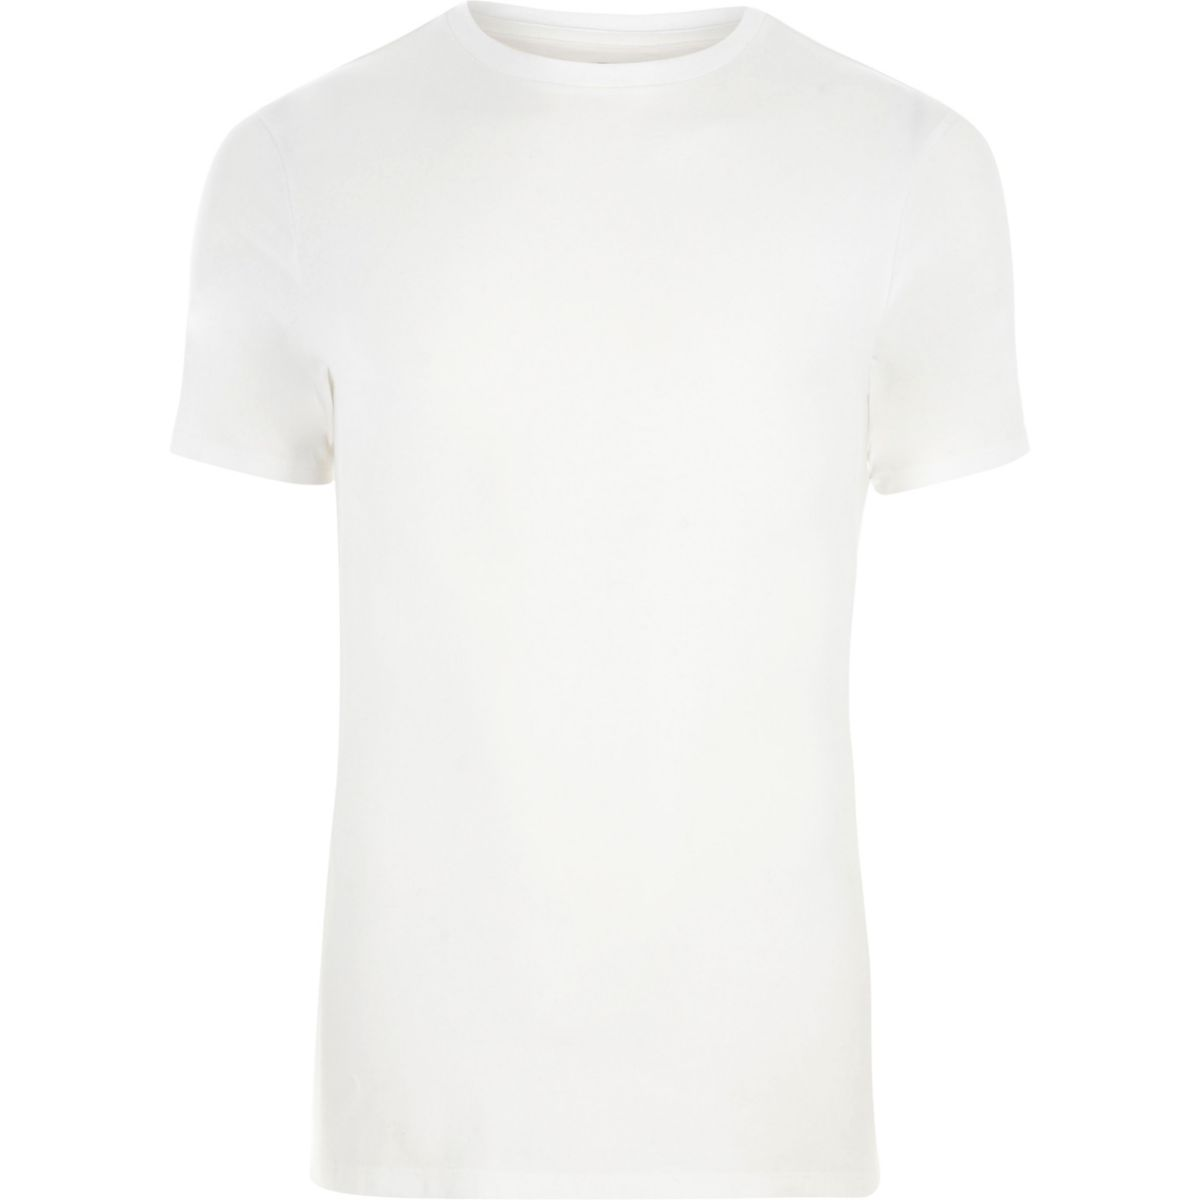 White muscle fit short sleeve T-shirt